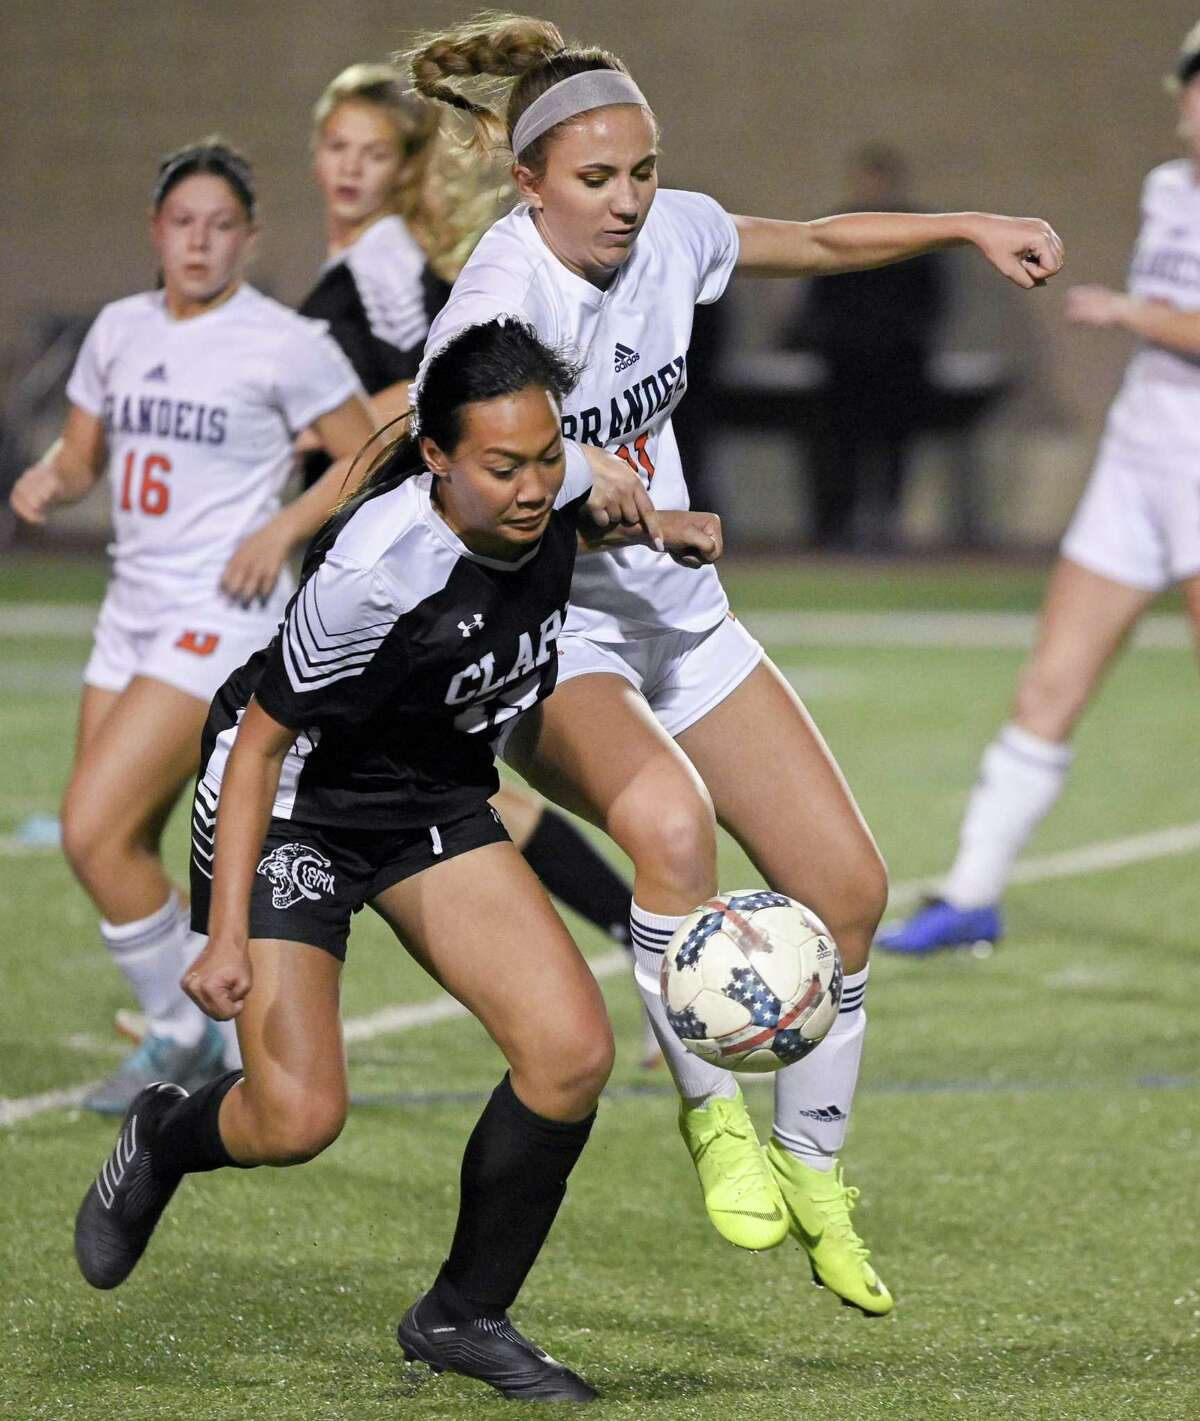 Clark's Hannah Faustino, left, and Brandeis' Kelli Diaz chase the ball during the second half of a girls high school soccer game, Tuesday, Jan. 22, in San Antonio. Clark won 2-1. (Darren Abate/Contributor)